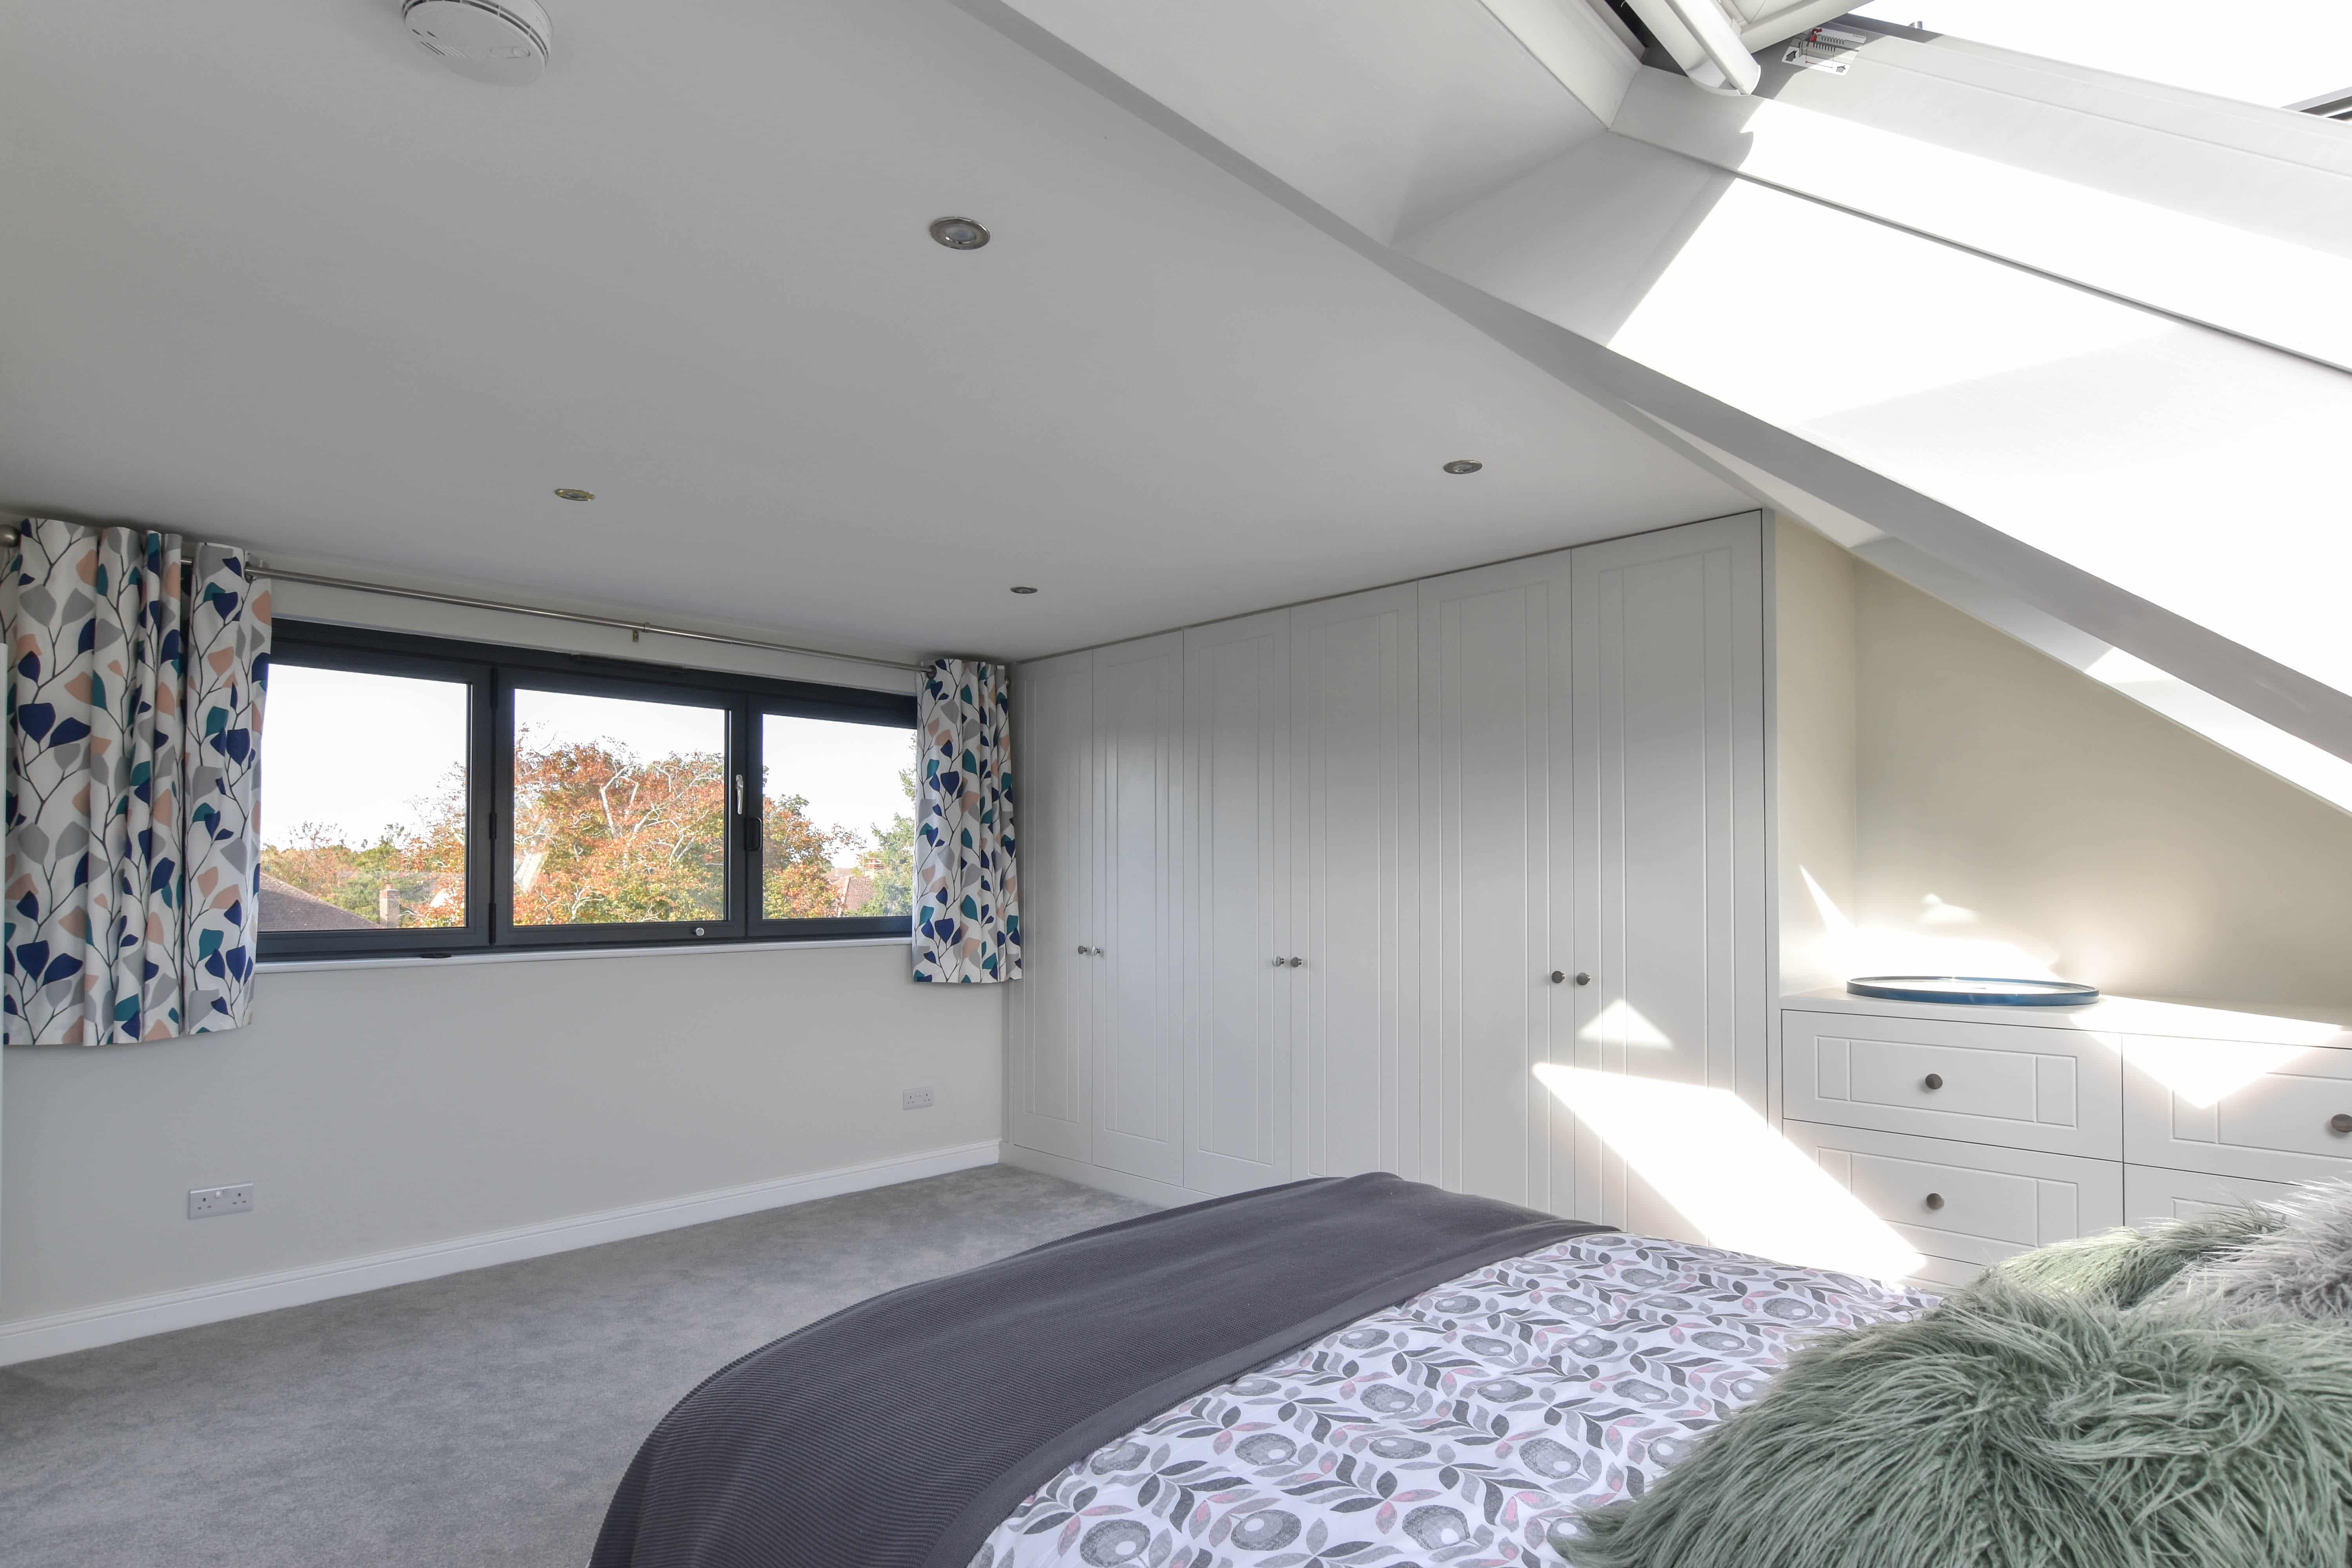 dormer loft extension in hassocks with built in wardrobes and bi fold windows